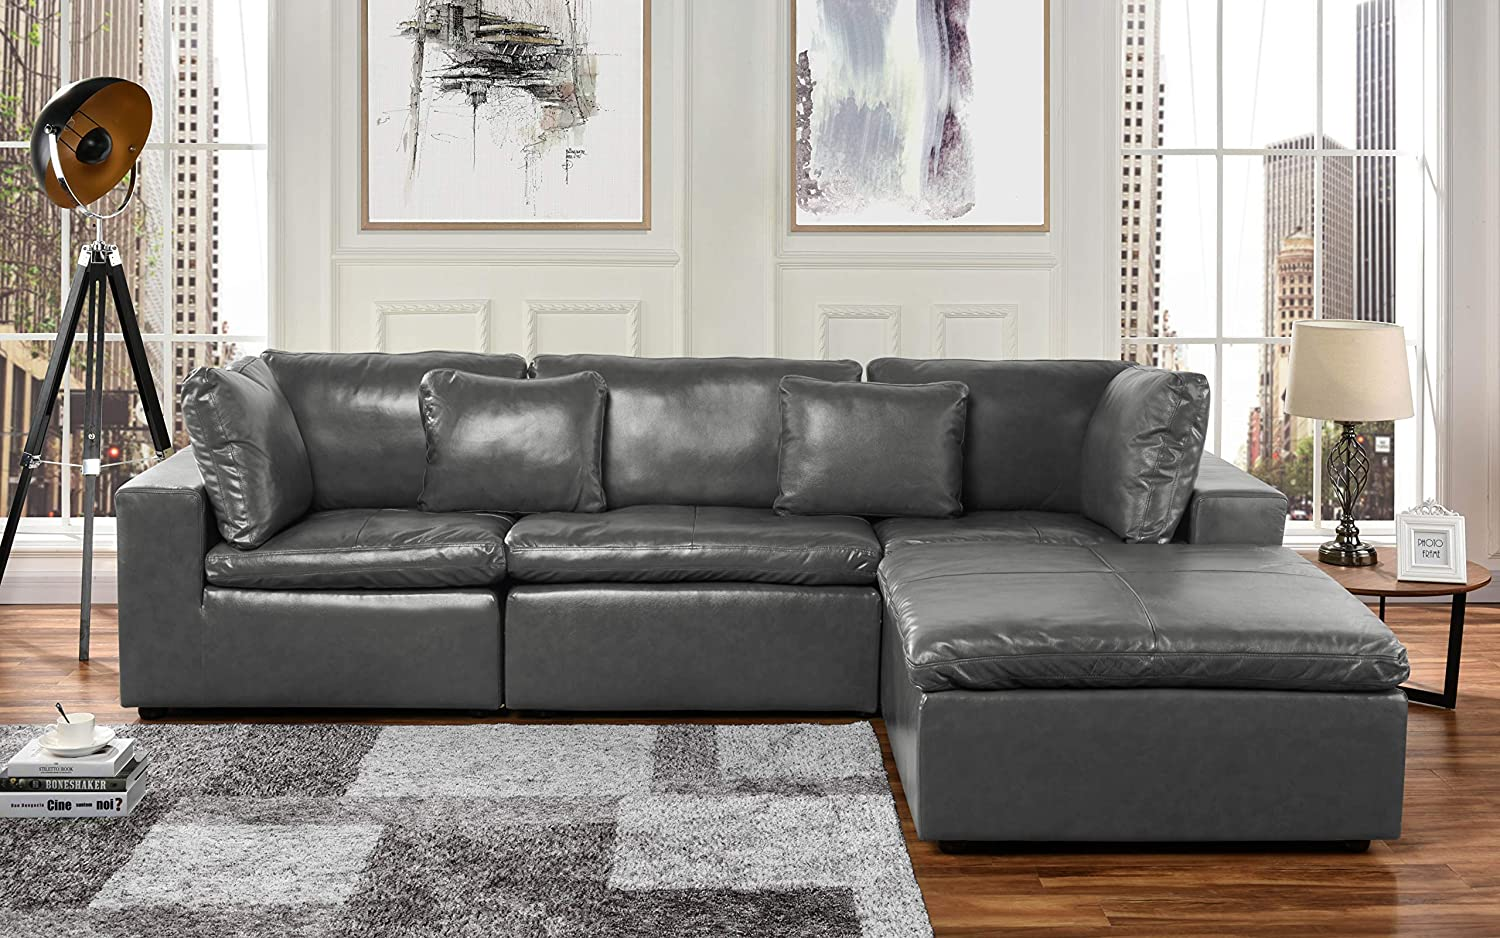 Upholstered Leather Sectional Sofa, Corner Couch, 111.8\